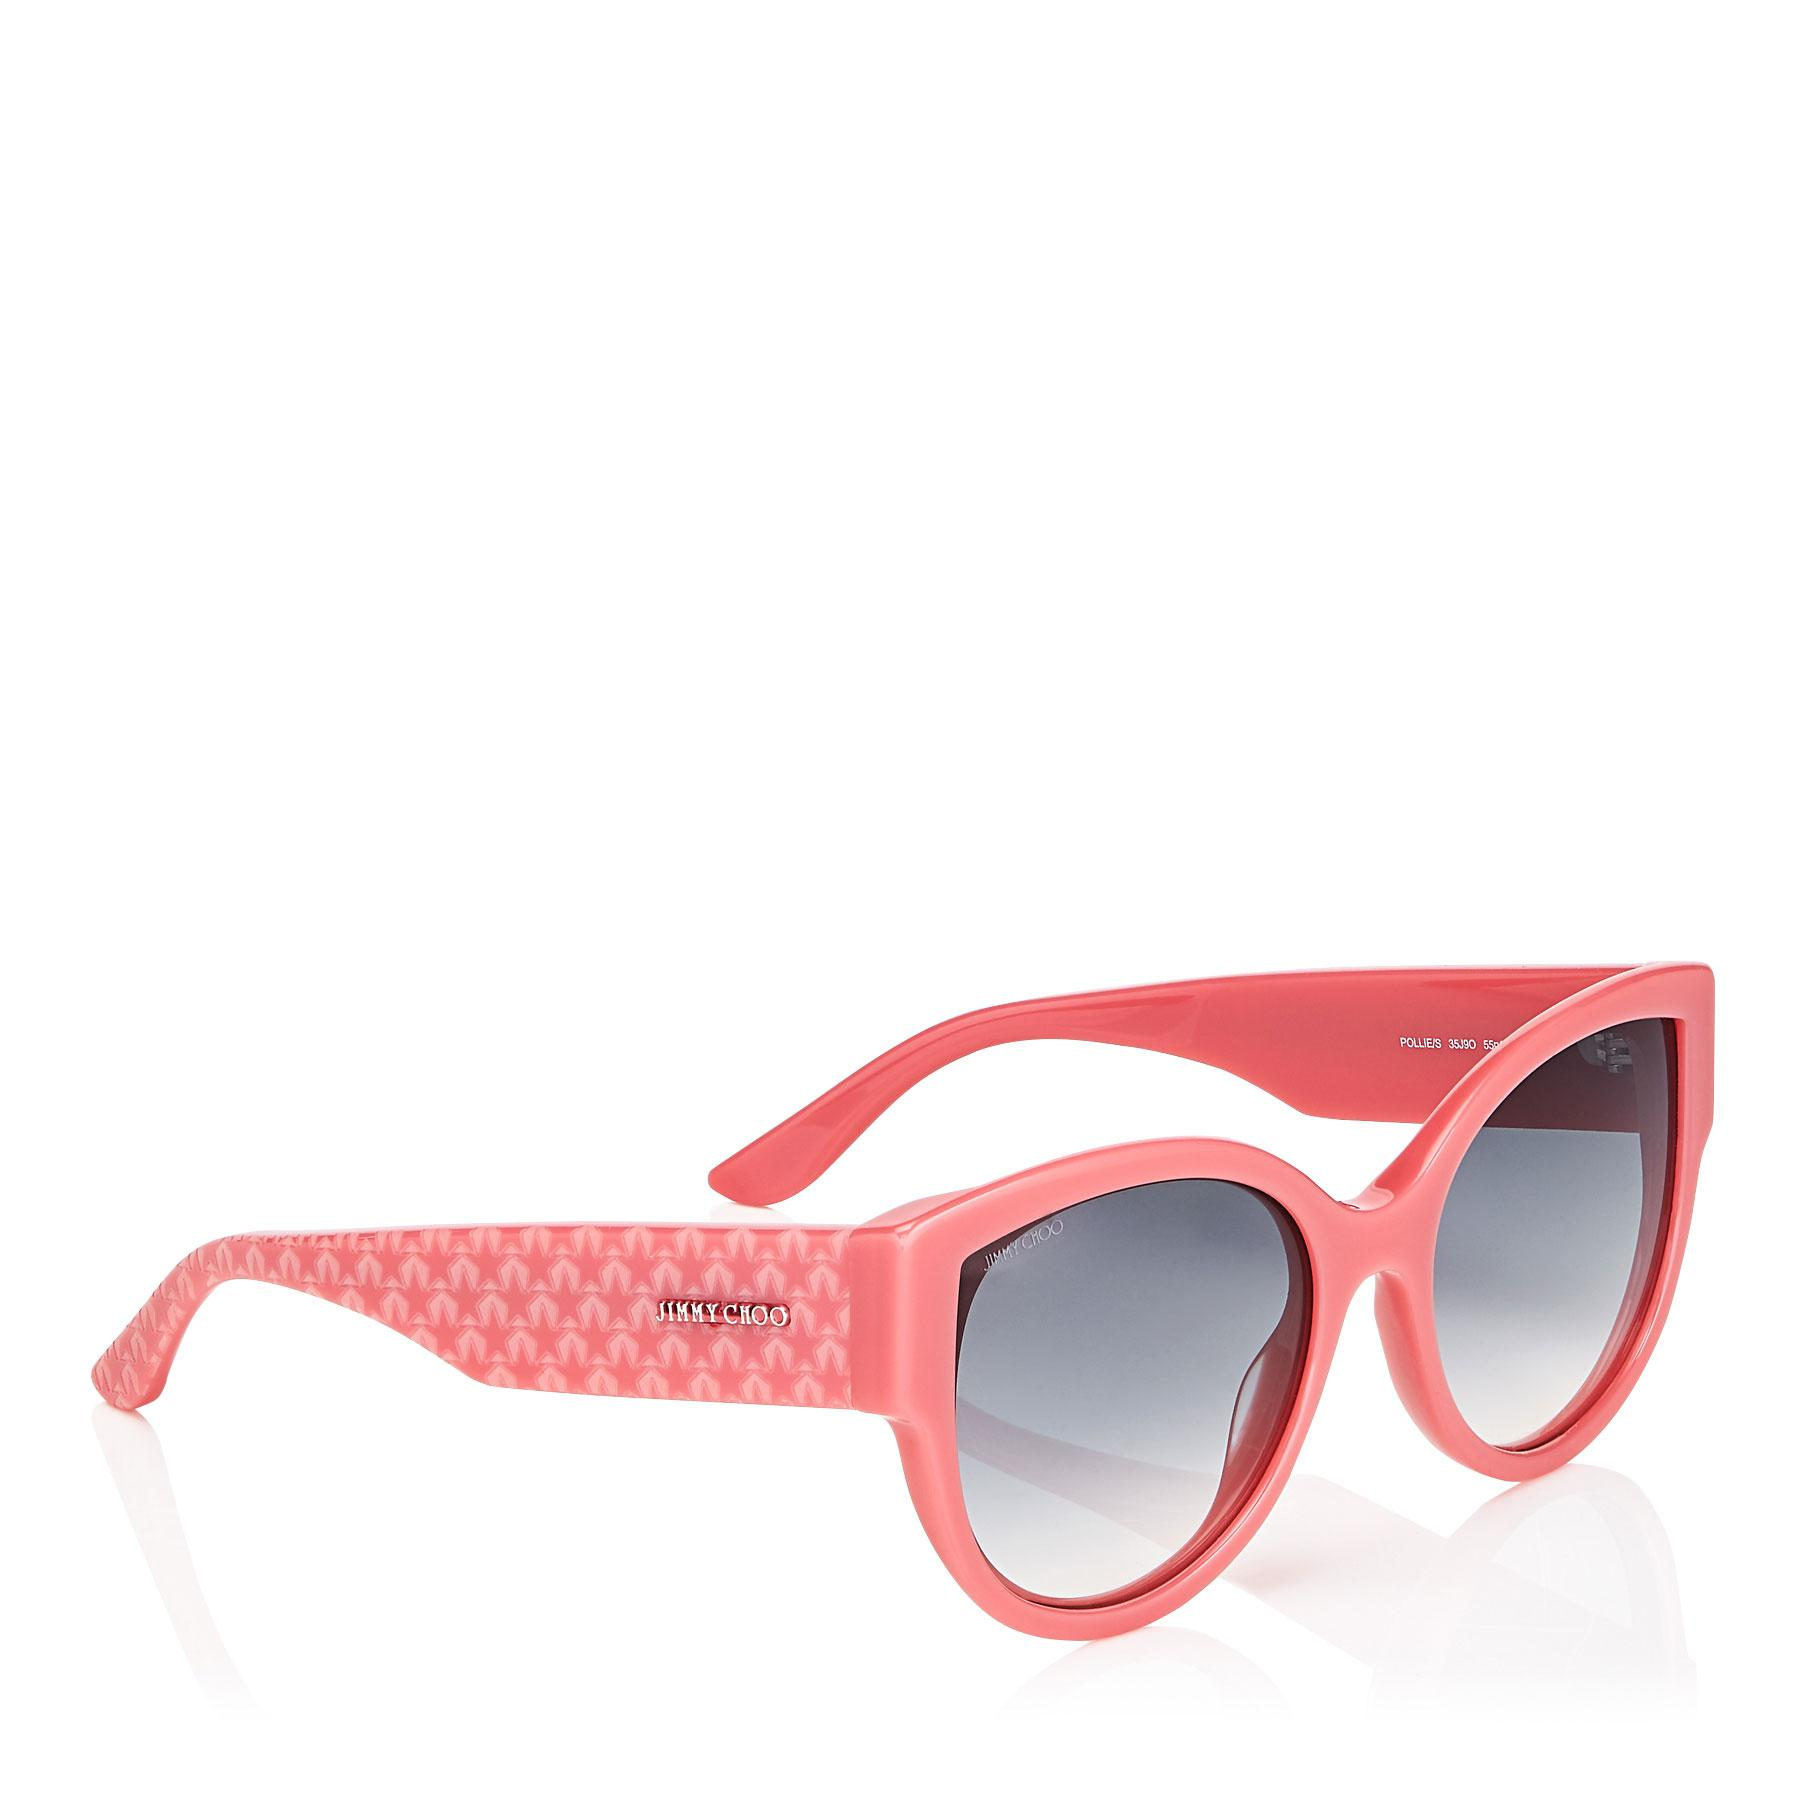 68306fd822ef Jimmy Choo Pollie Pink Cat-eye Sunglasses With Star Detailing in ...